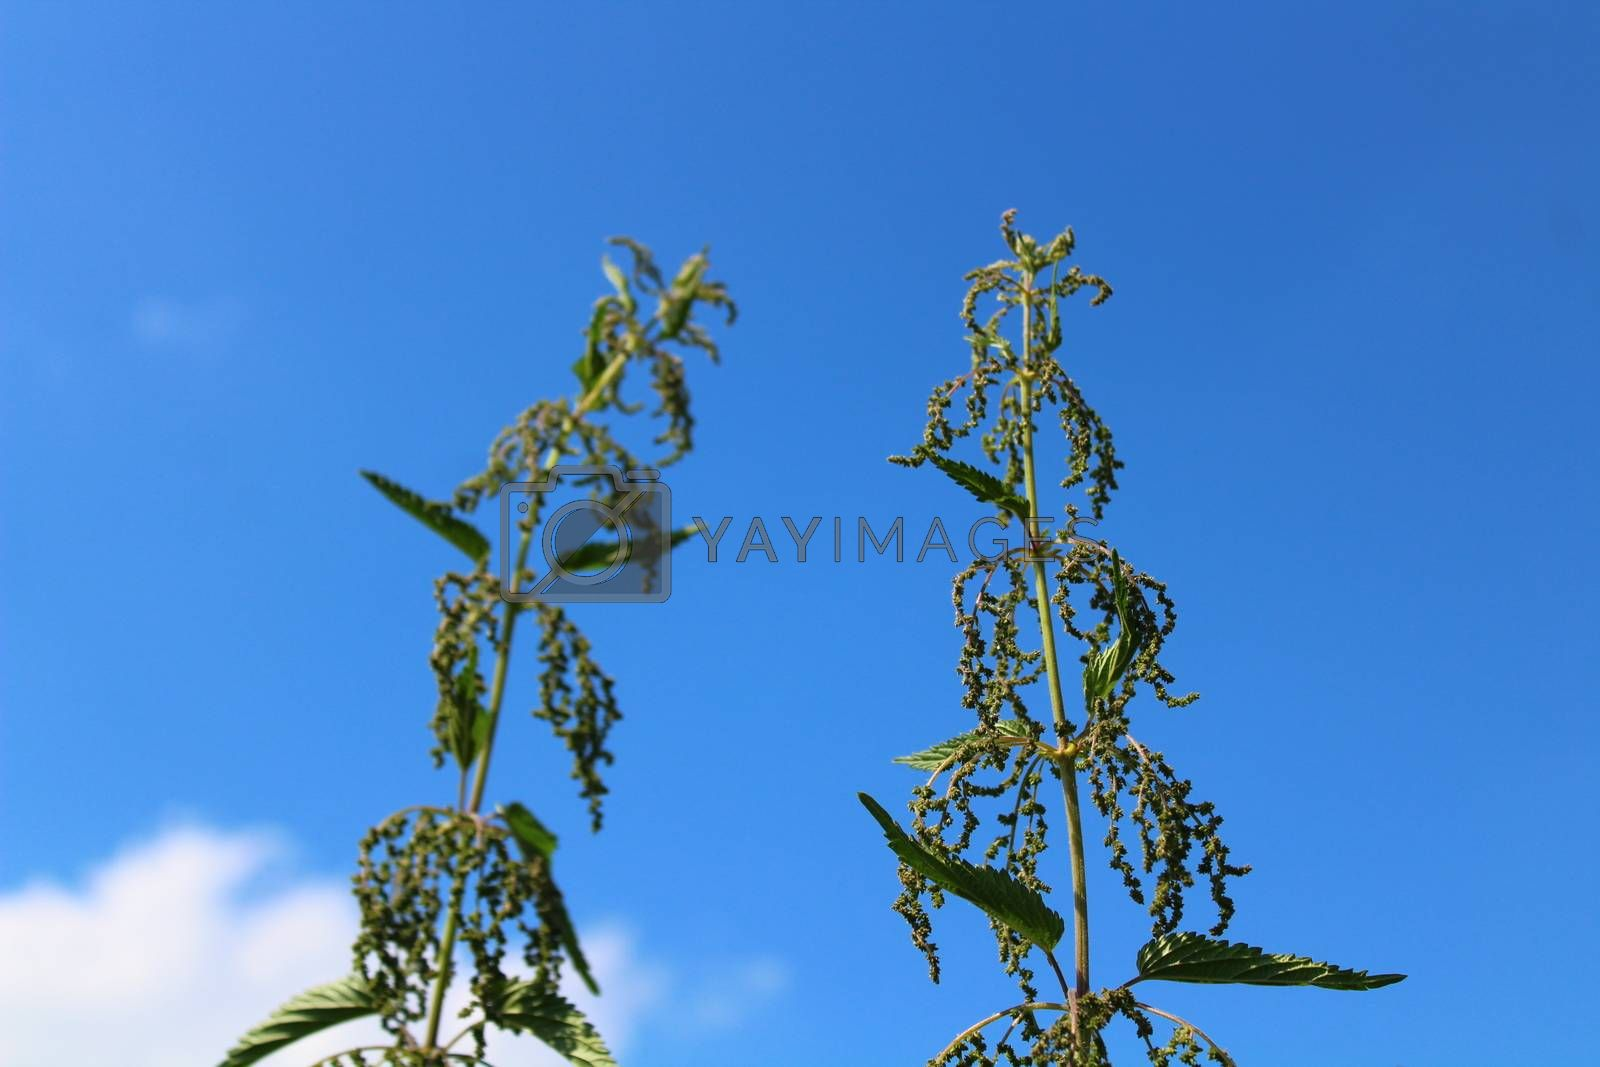 Royalty free image of many stinging nettles in front of the blue sky by martina_unbehauen